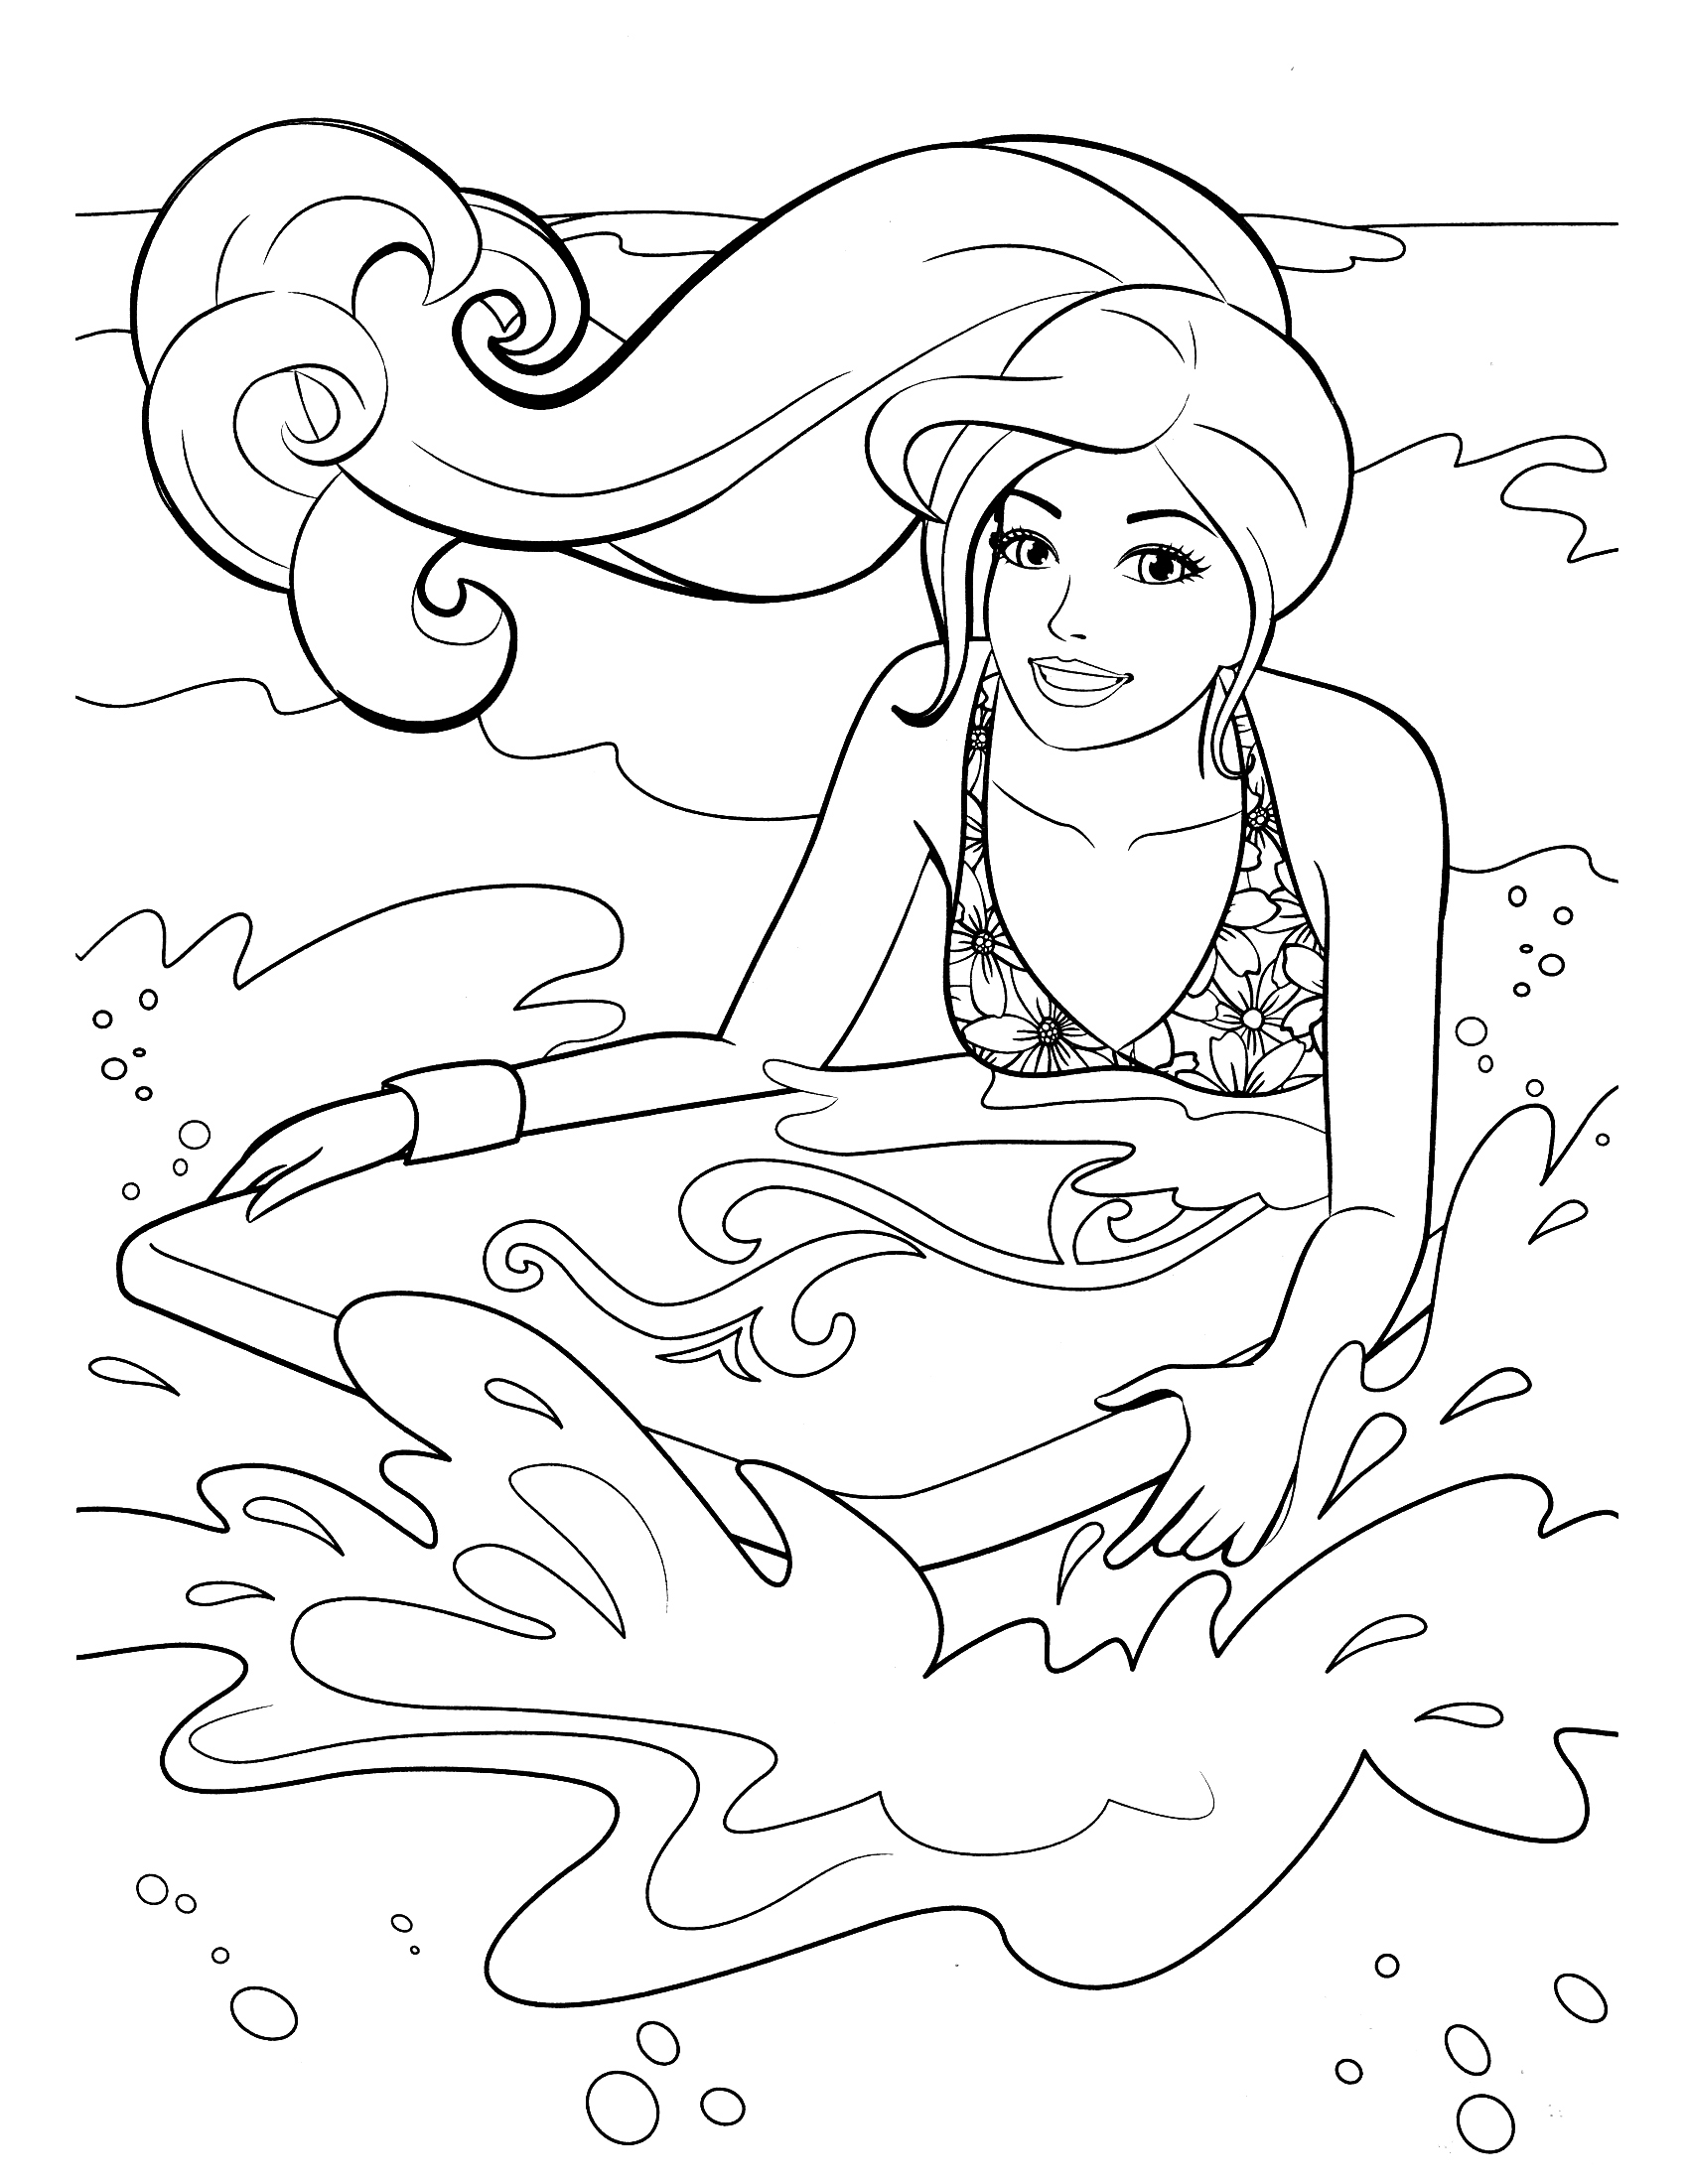 barbie coloring book coloring pages barbie free printable coloring pages book coloring barbie 1 2